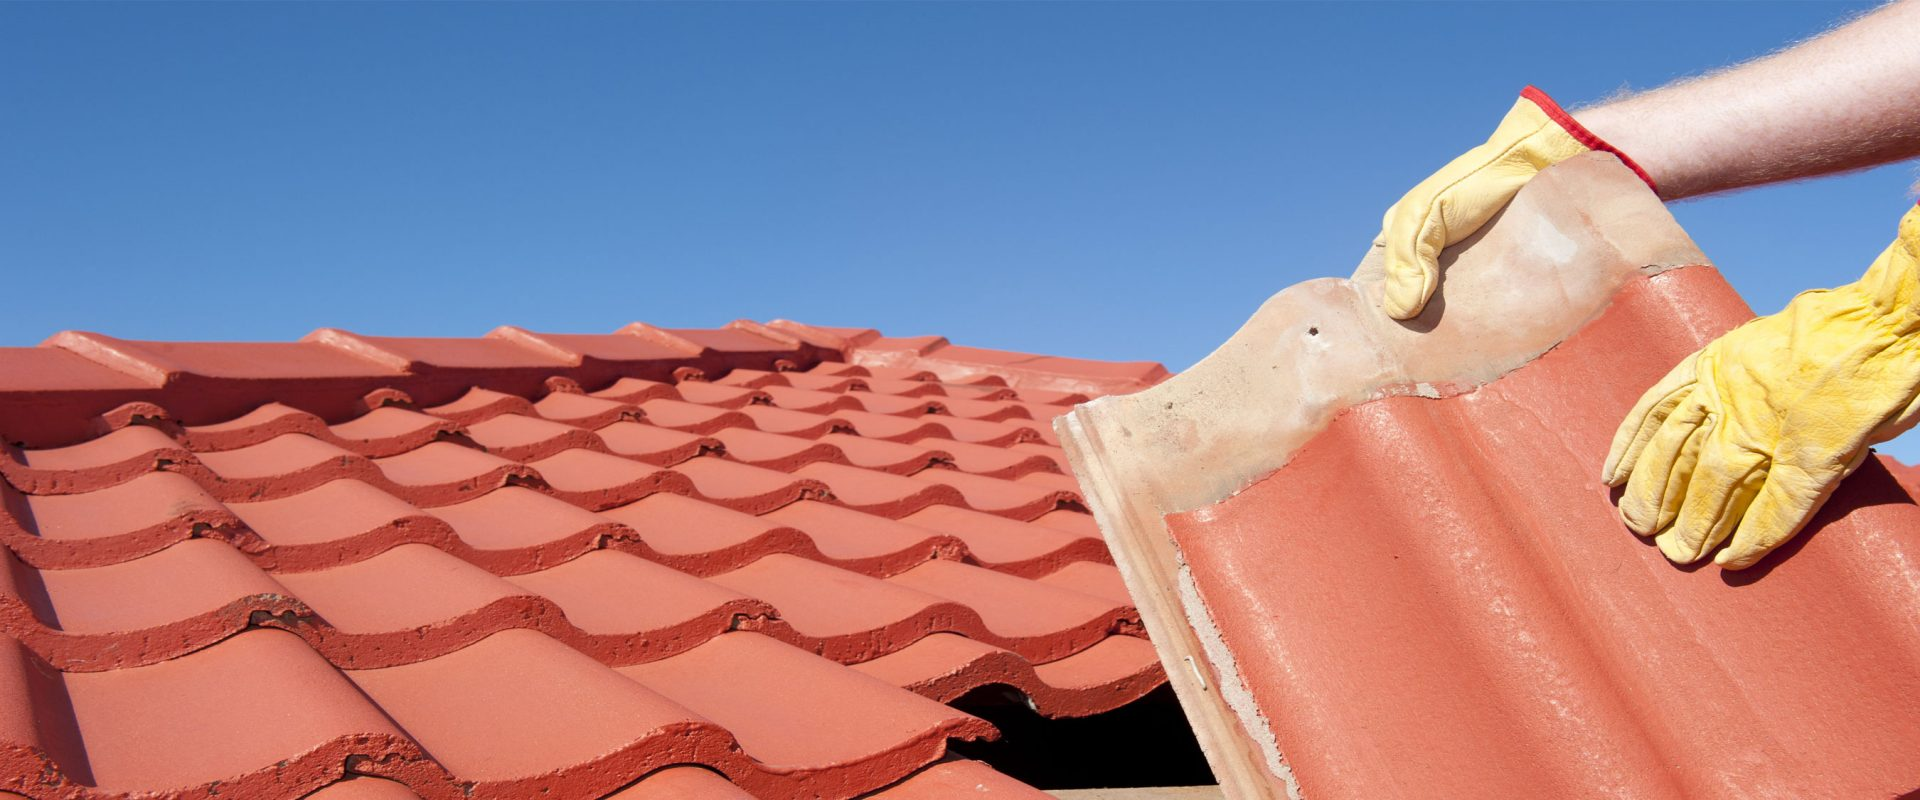 Roofing Information Webpage